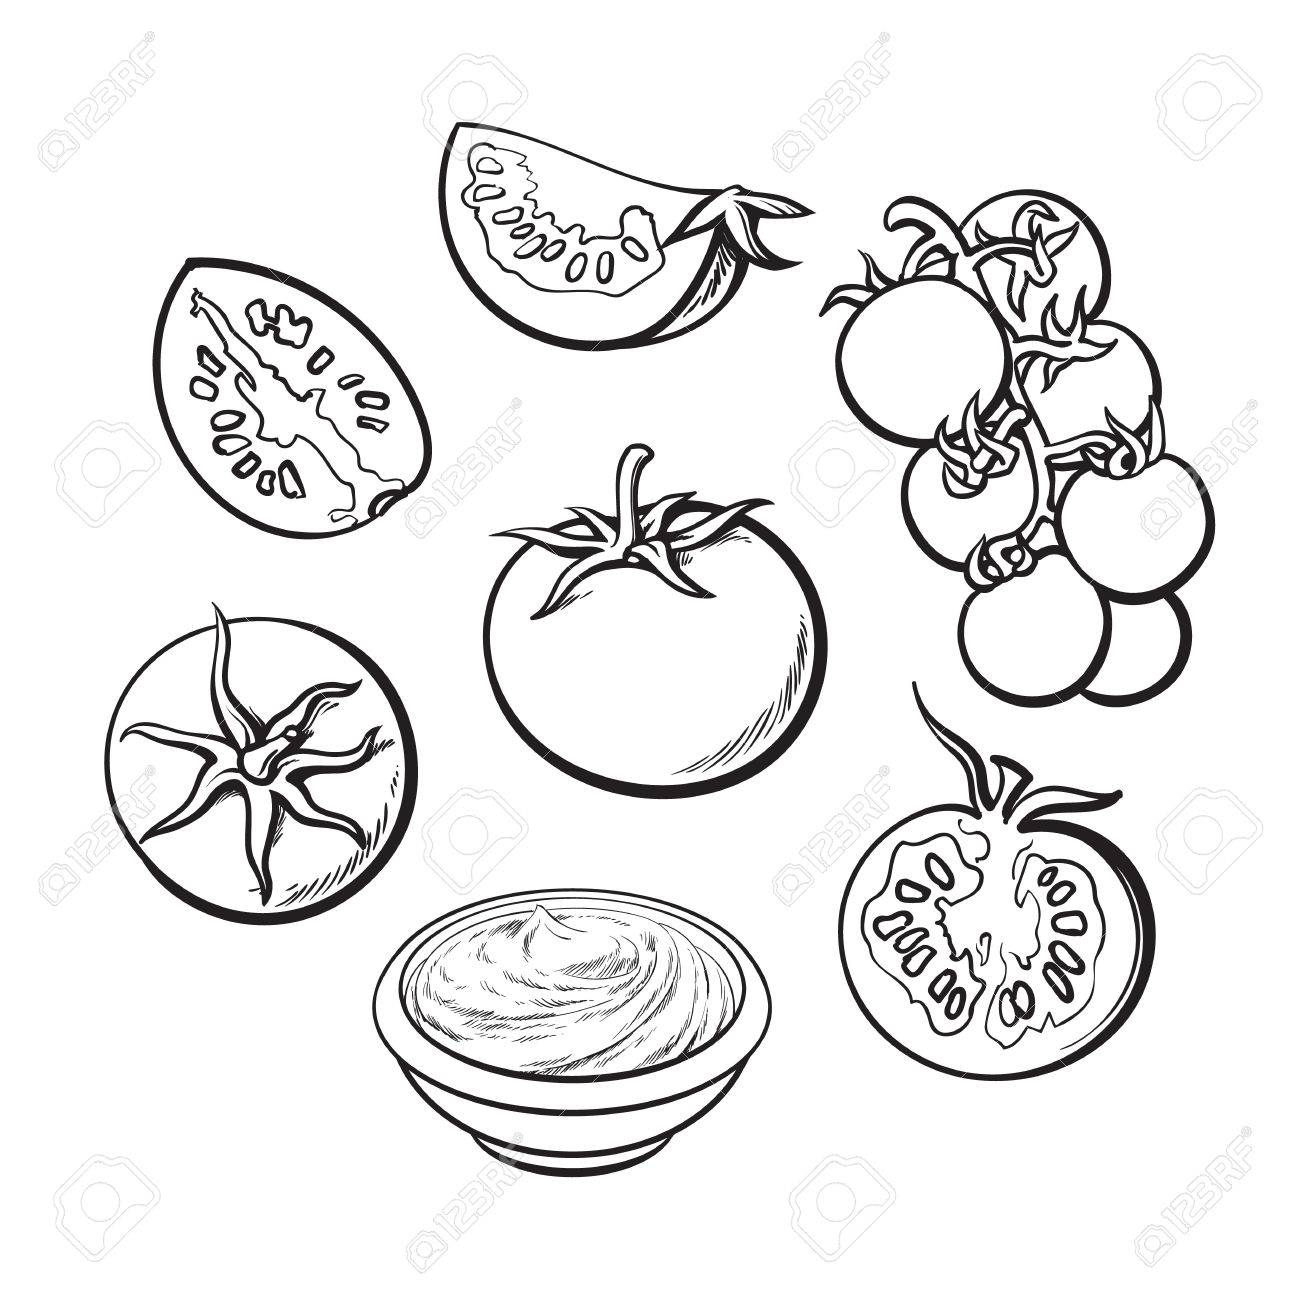 1300x1300 Set Of Sketch Style Vector Illustrations Of Ripe Tomatoes Isolated